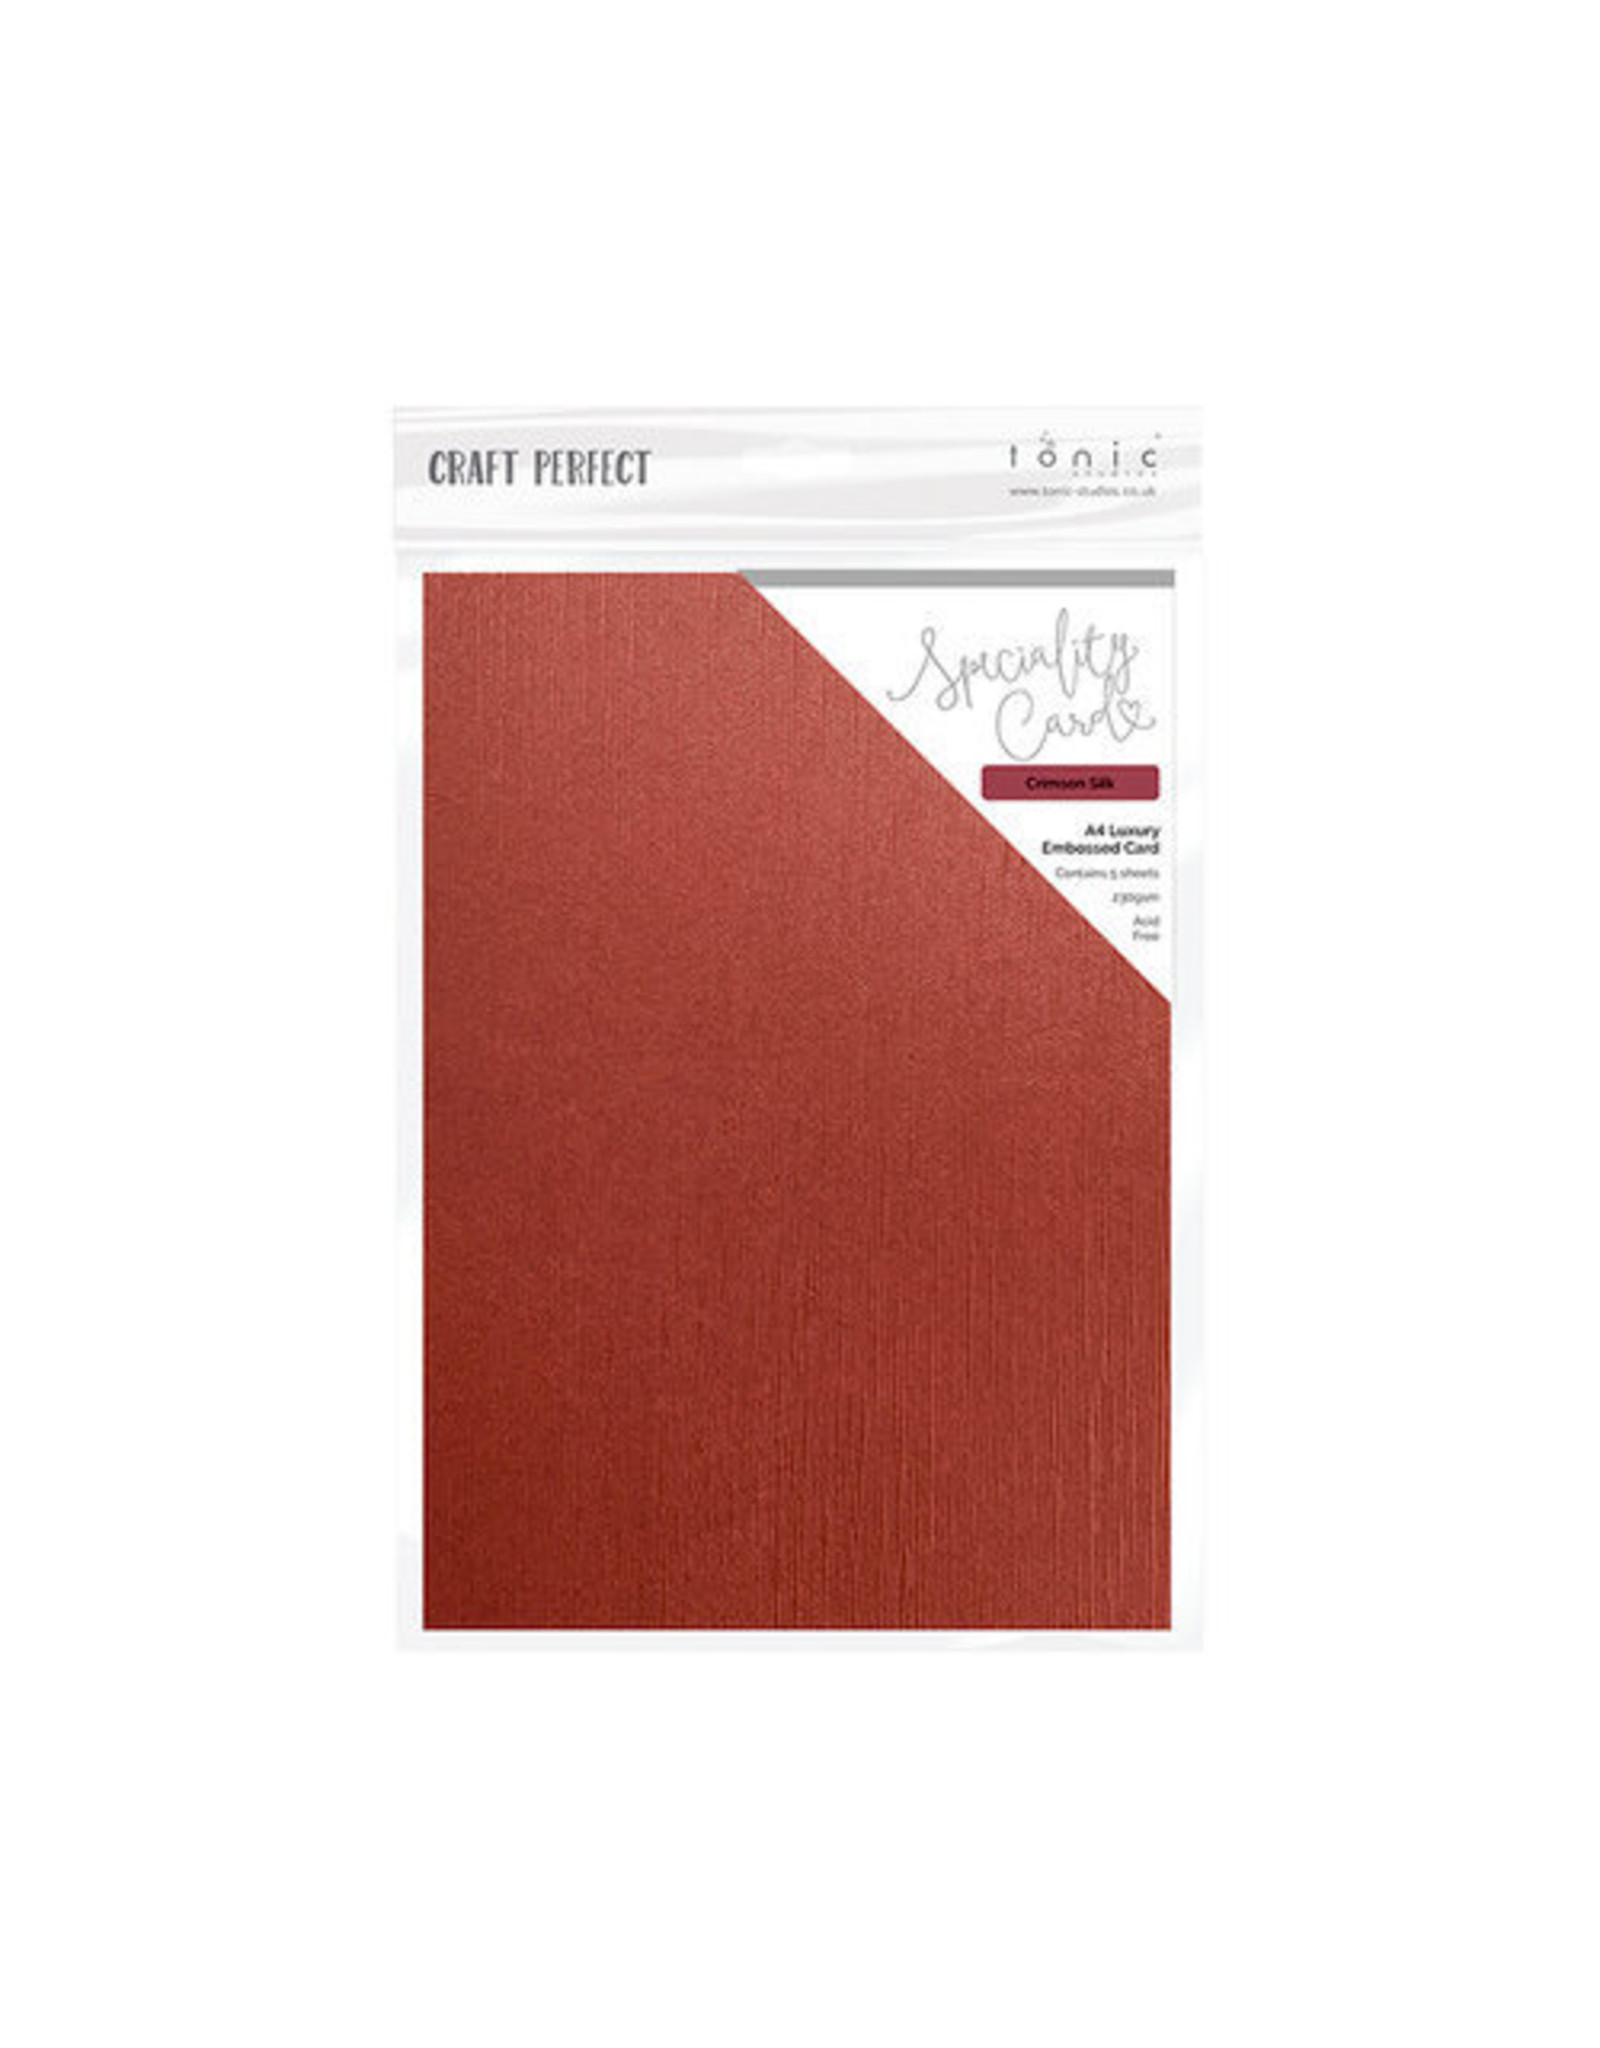 Tonic Studio Crimson Silk - A4 Luxury Embossed